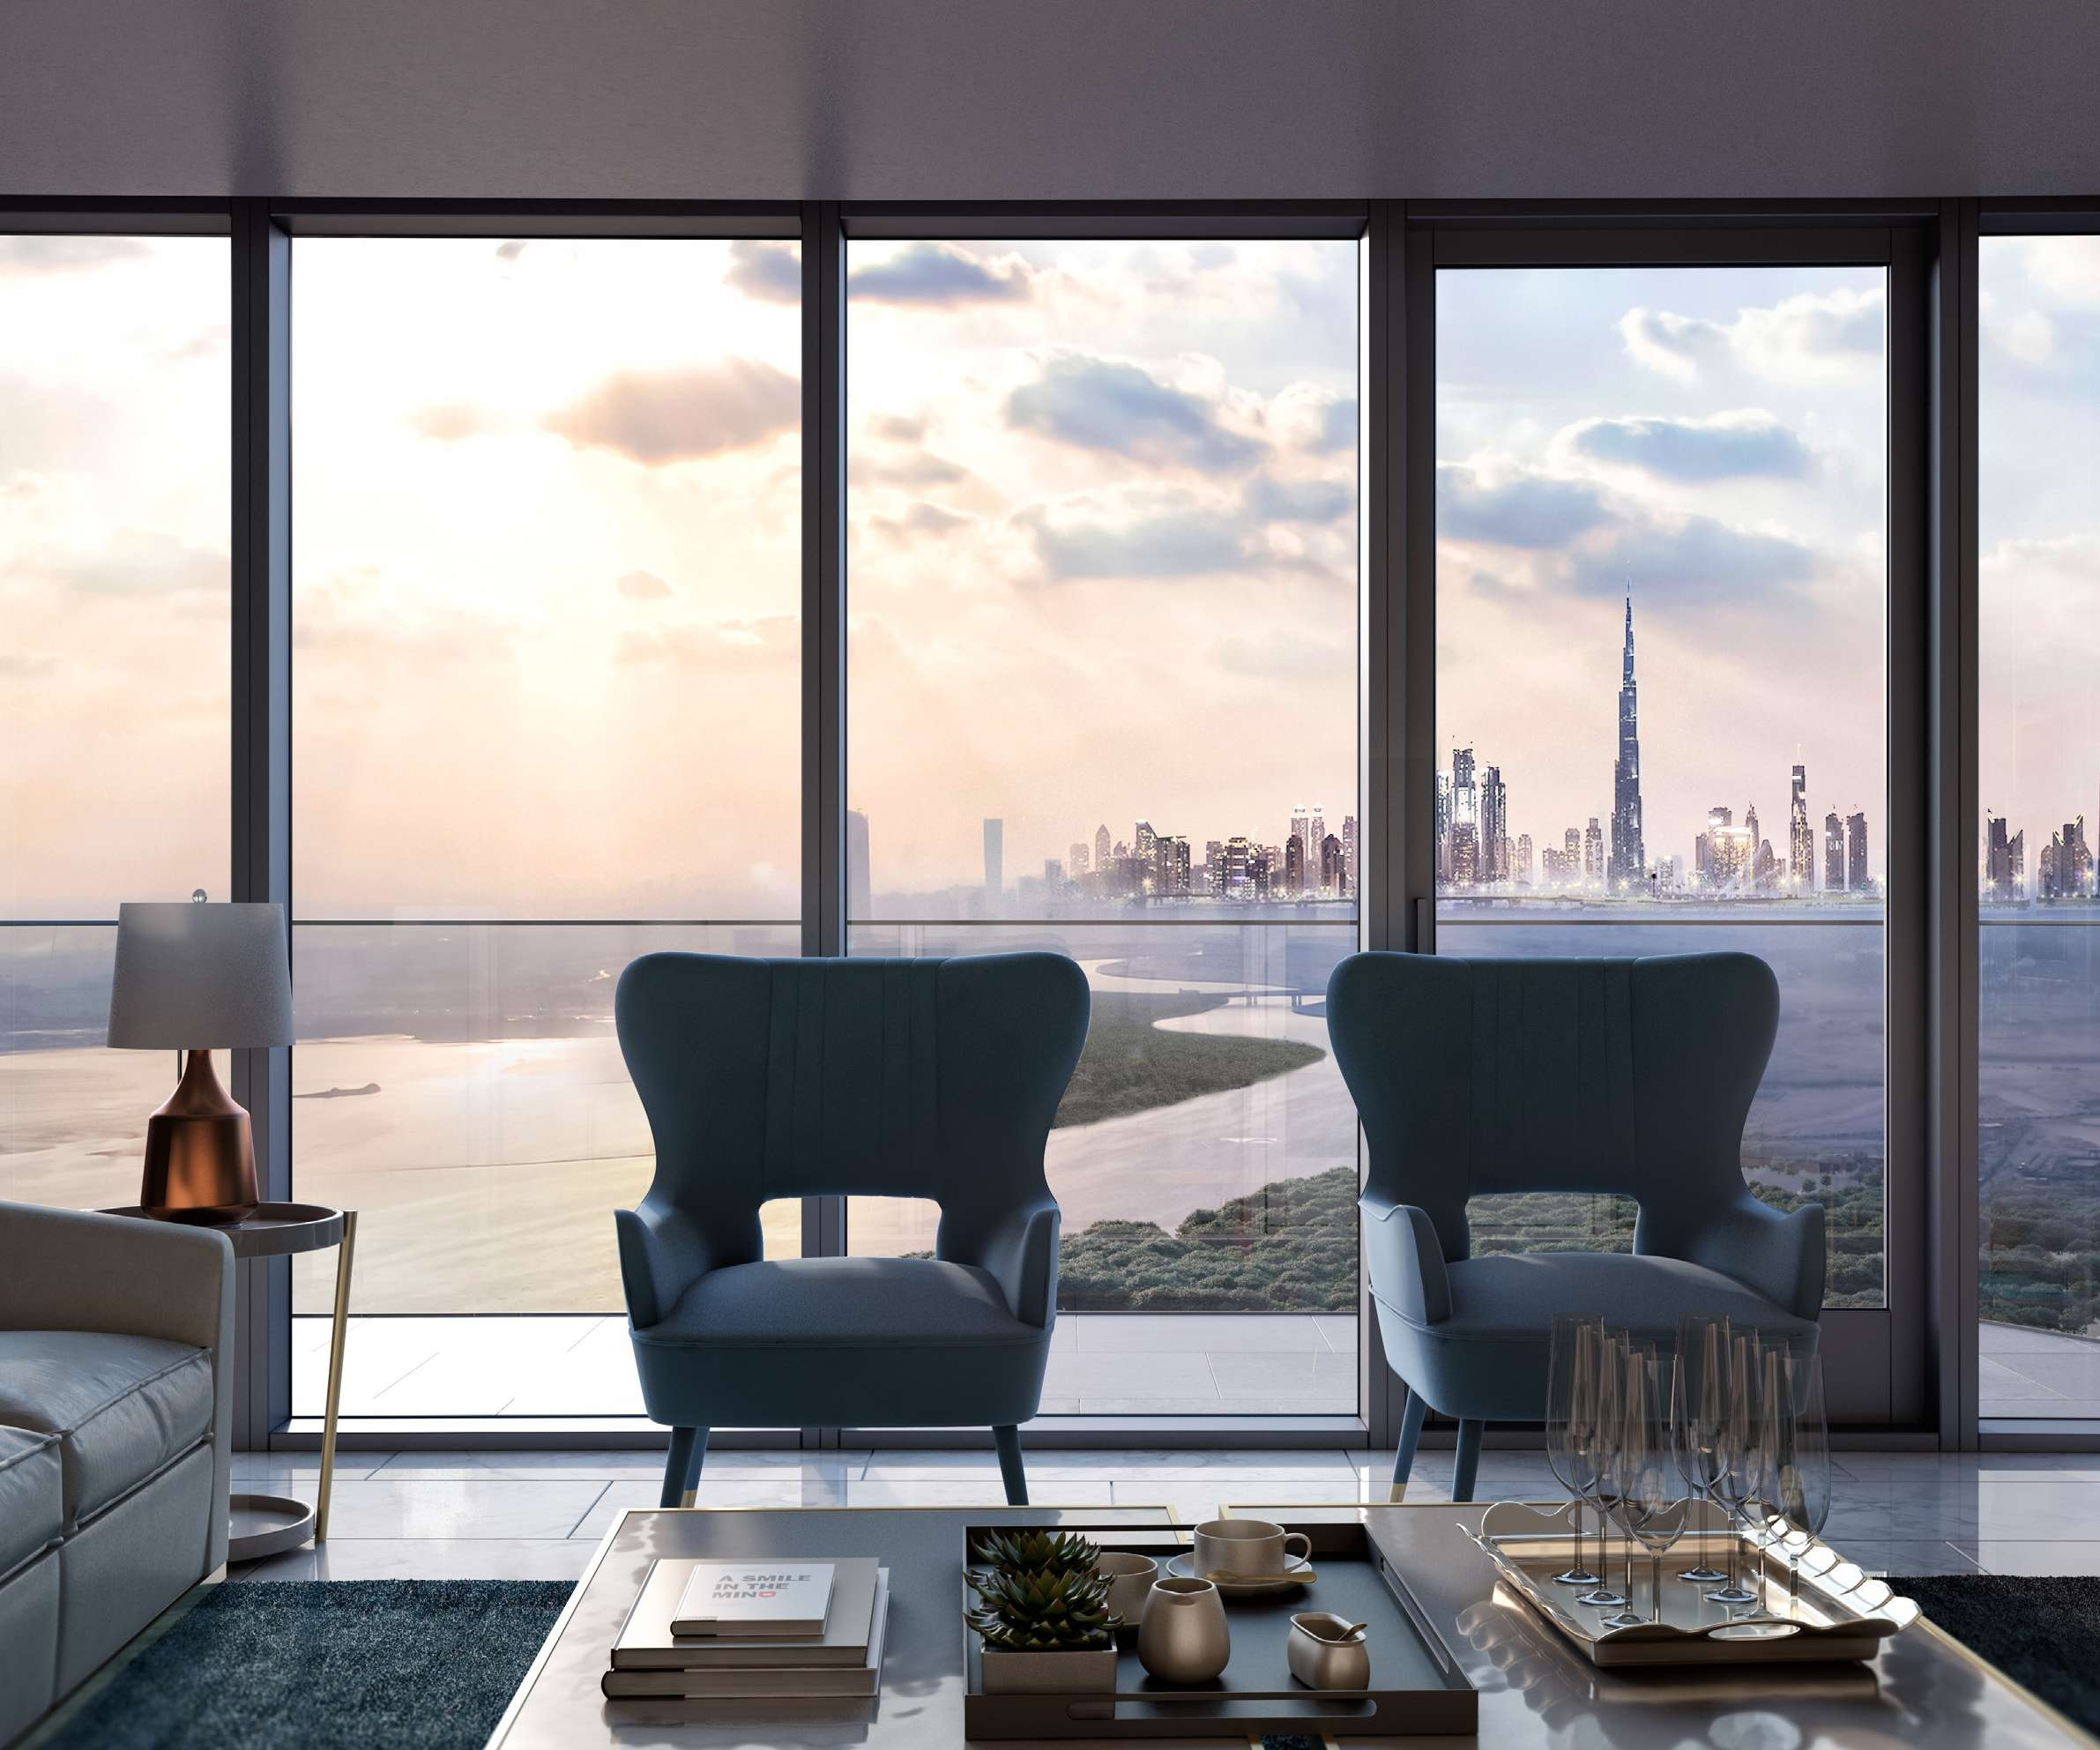 Limitless Activities with Uninterrupted Views